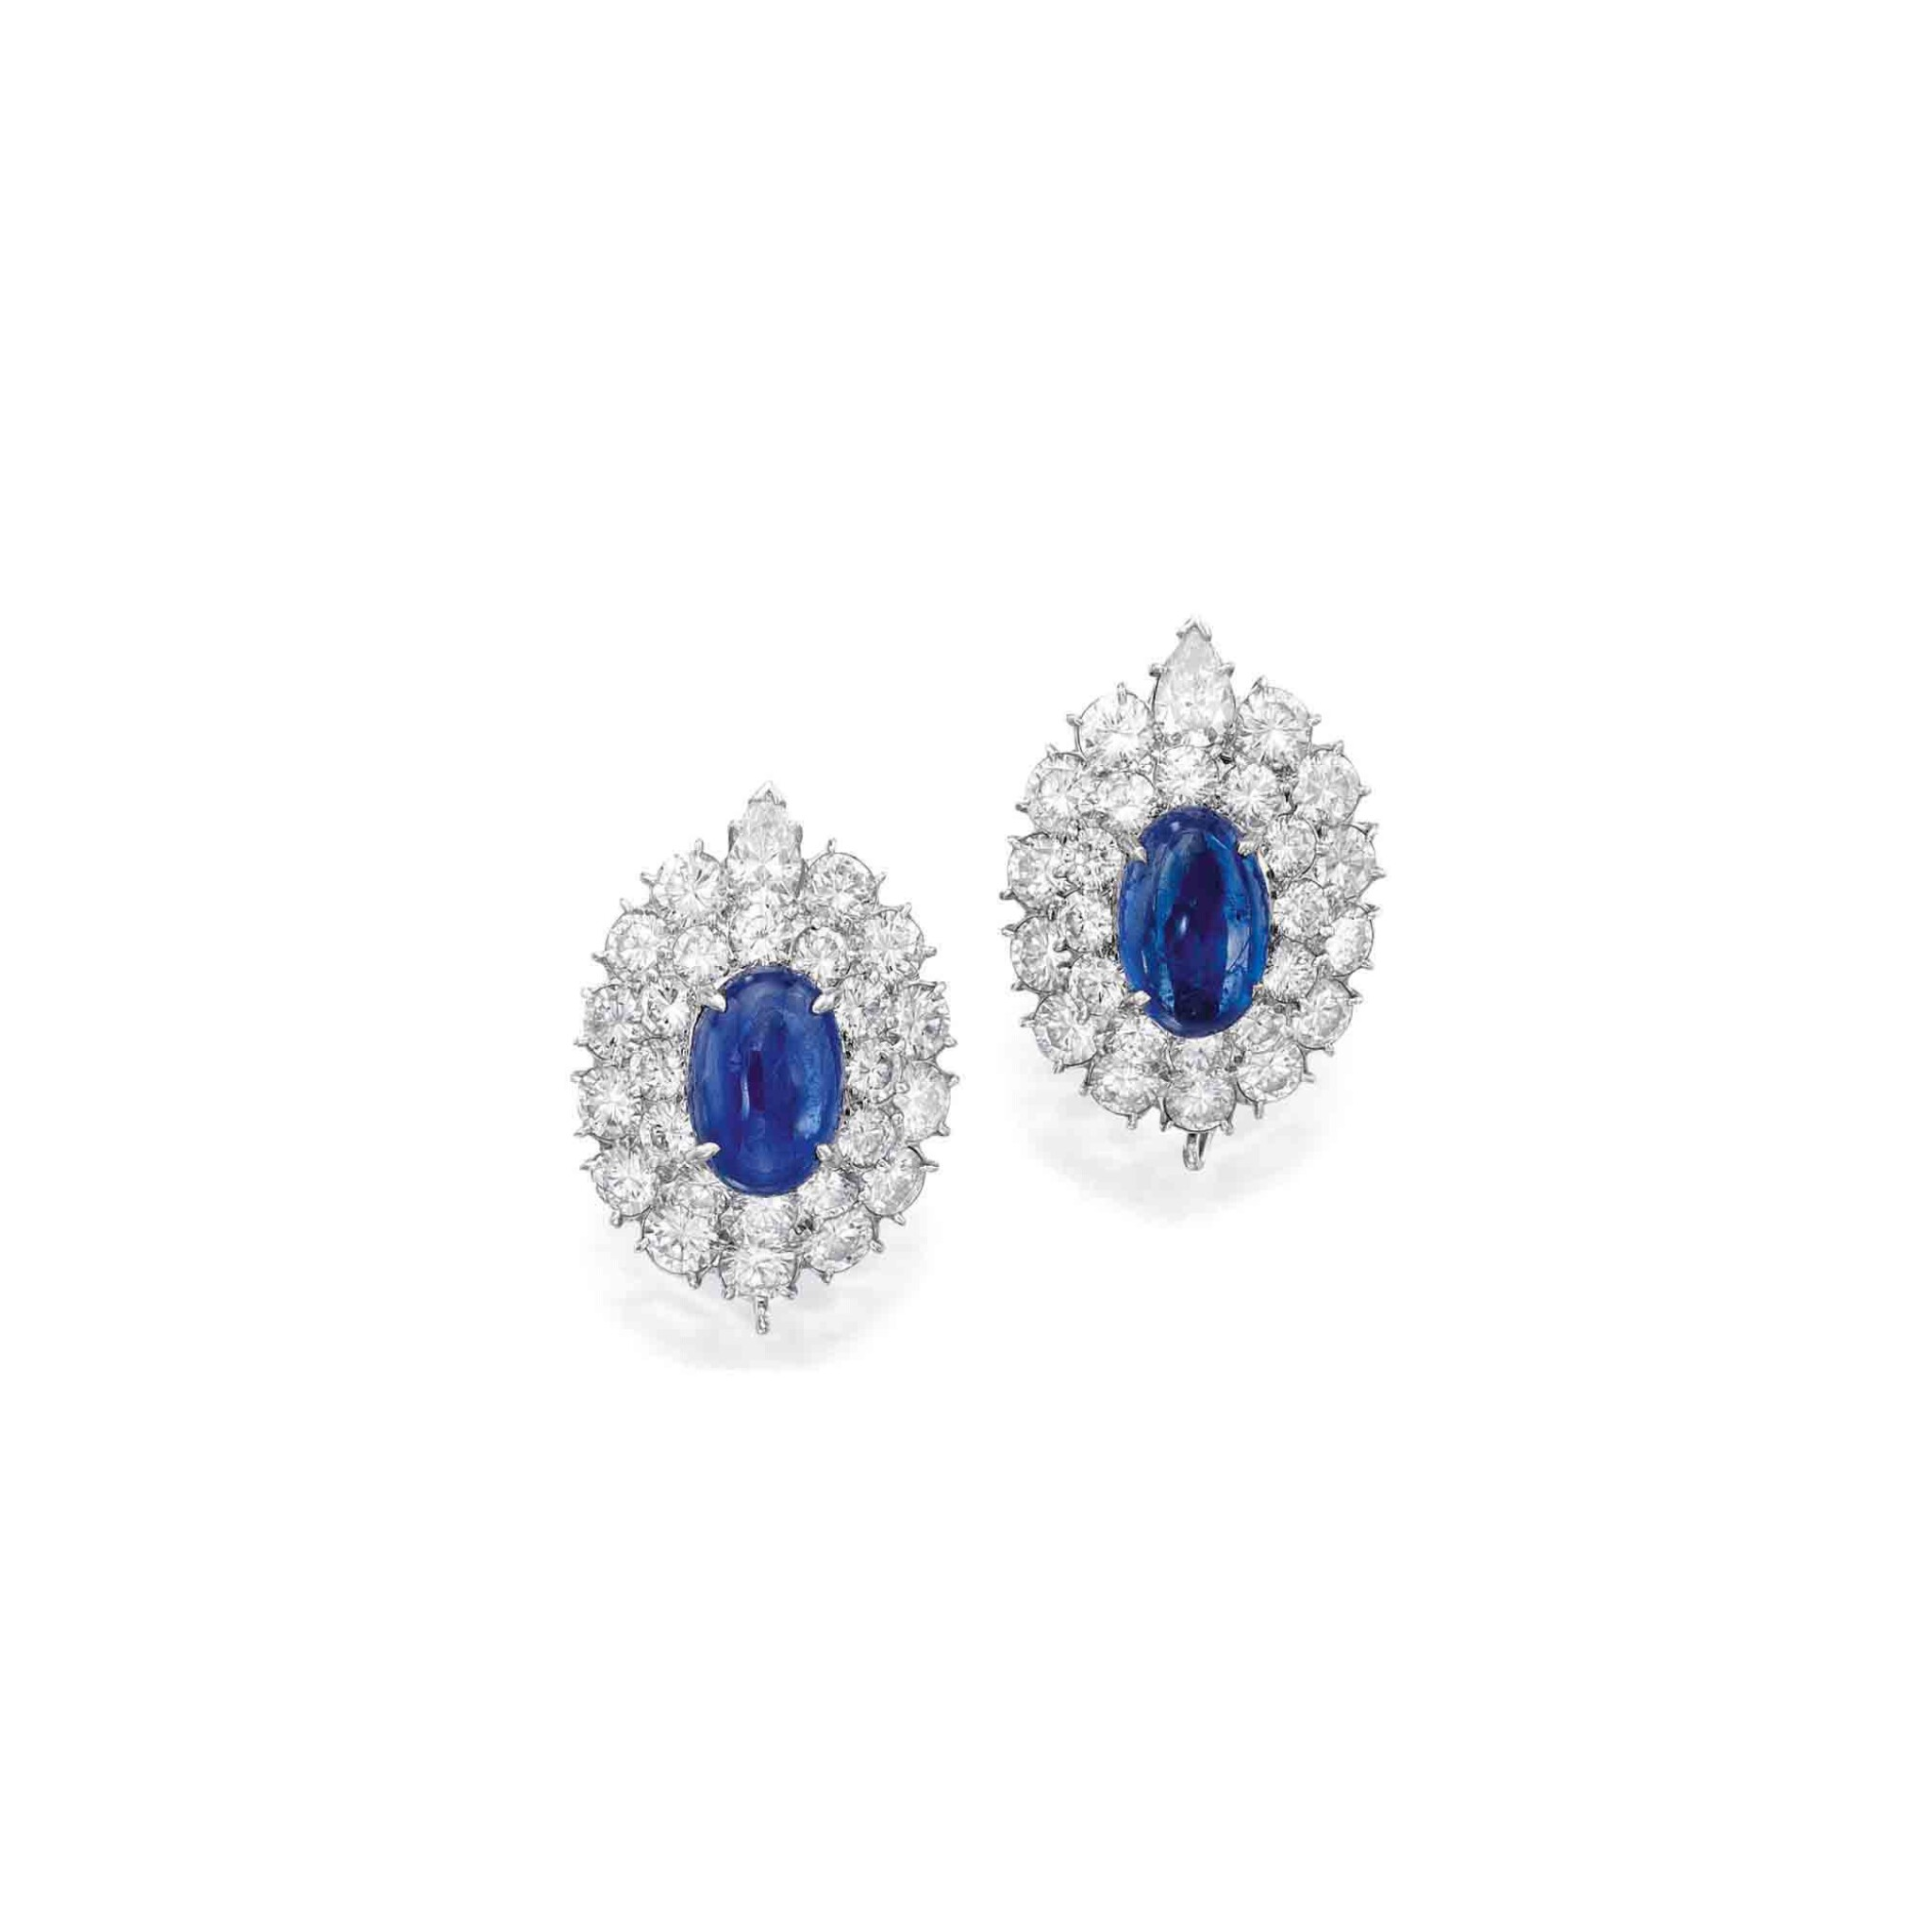 View full screen - View 1 of Lot 7. Van Cleef & Arpels [梵克雅寶] | Pair of Sapphire and Diamond Earclips [藍寶石配鑽石耳環一對].